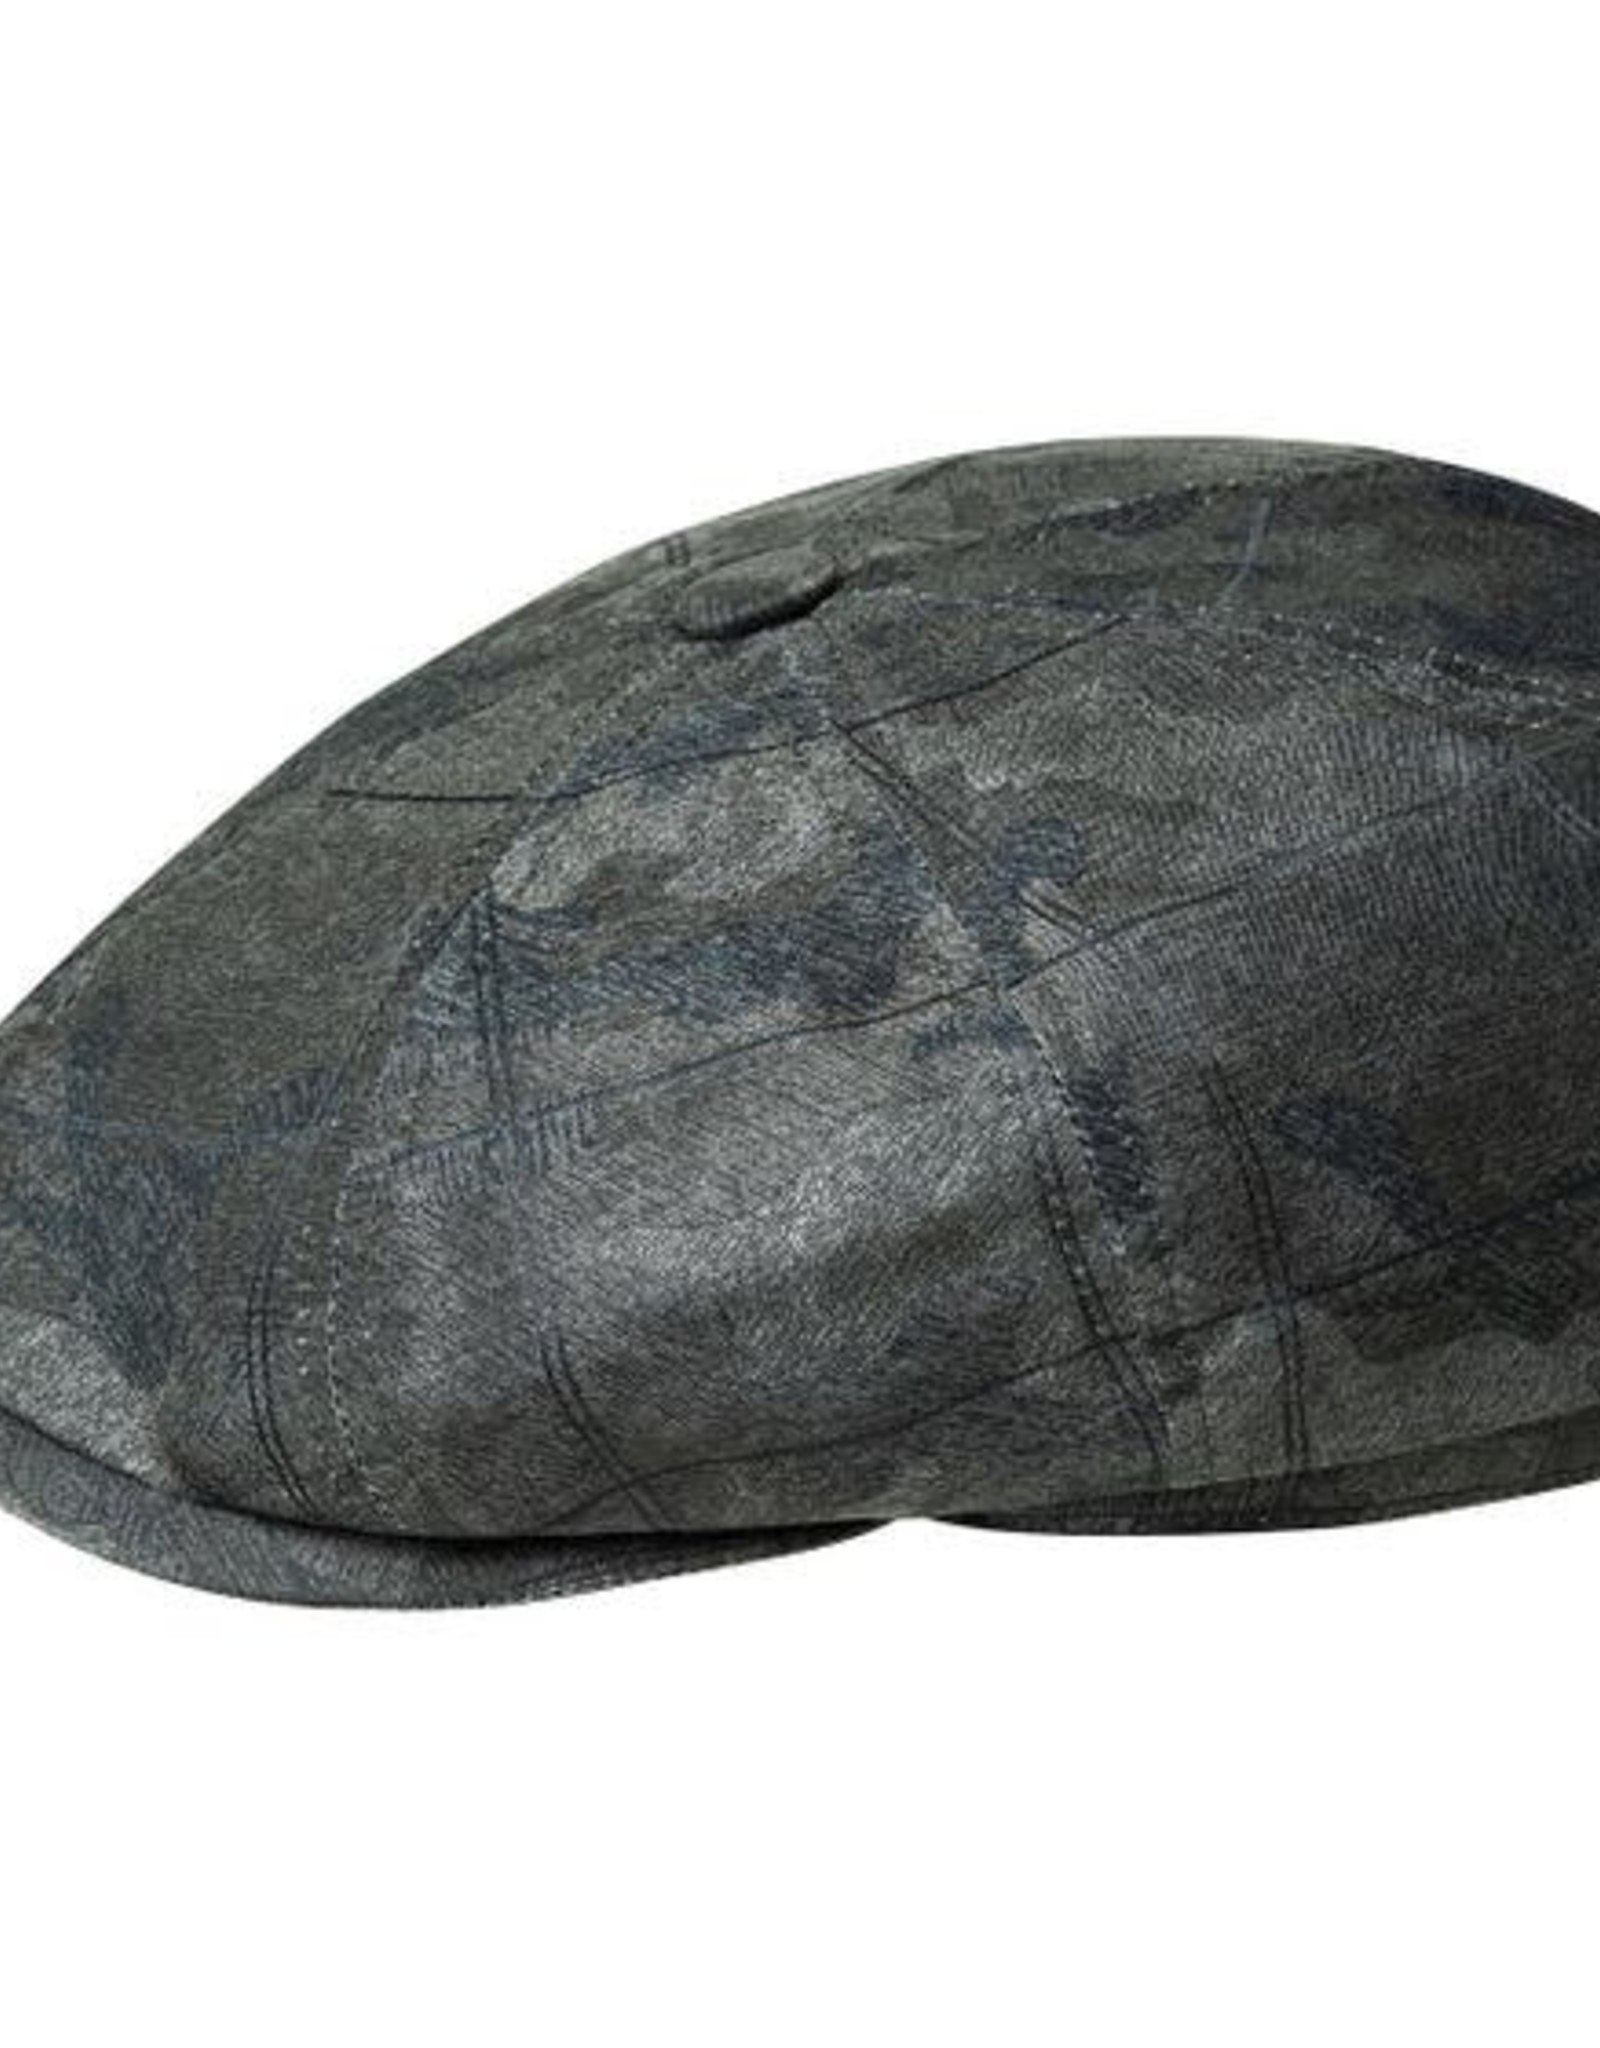 Bailey Hat Co. HAT-IVY-ALMAS, CAMO BLACK